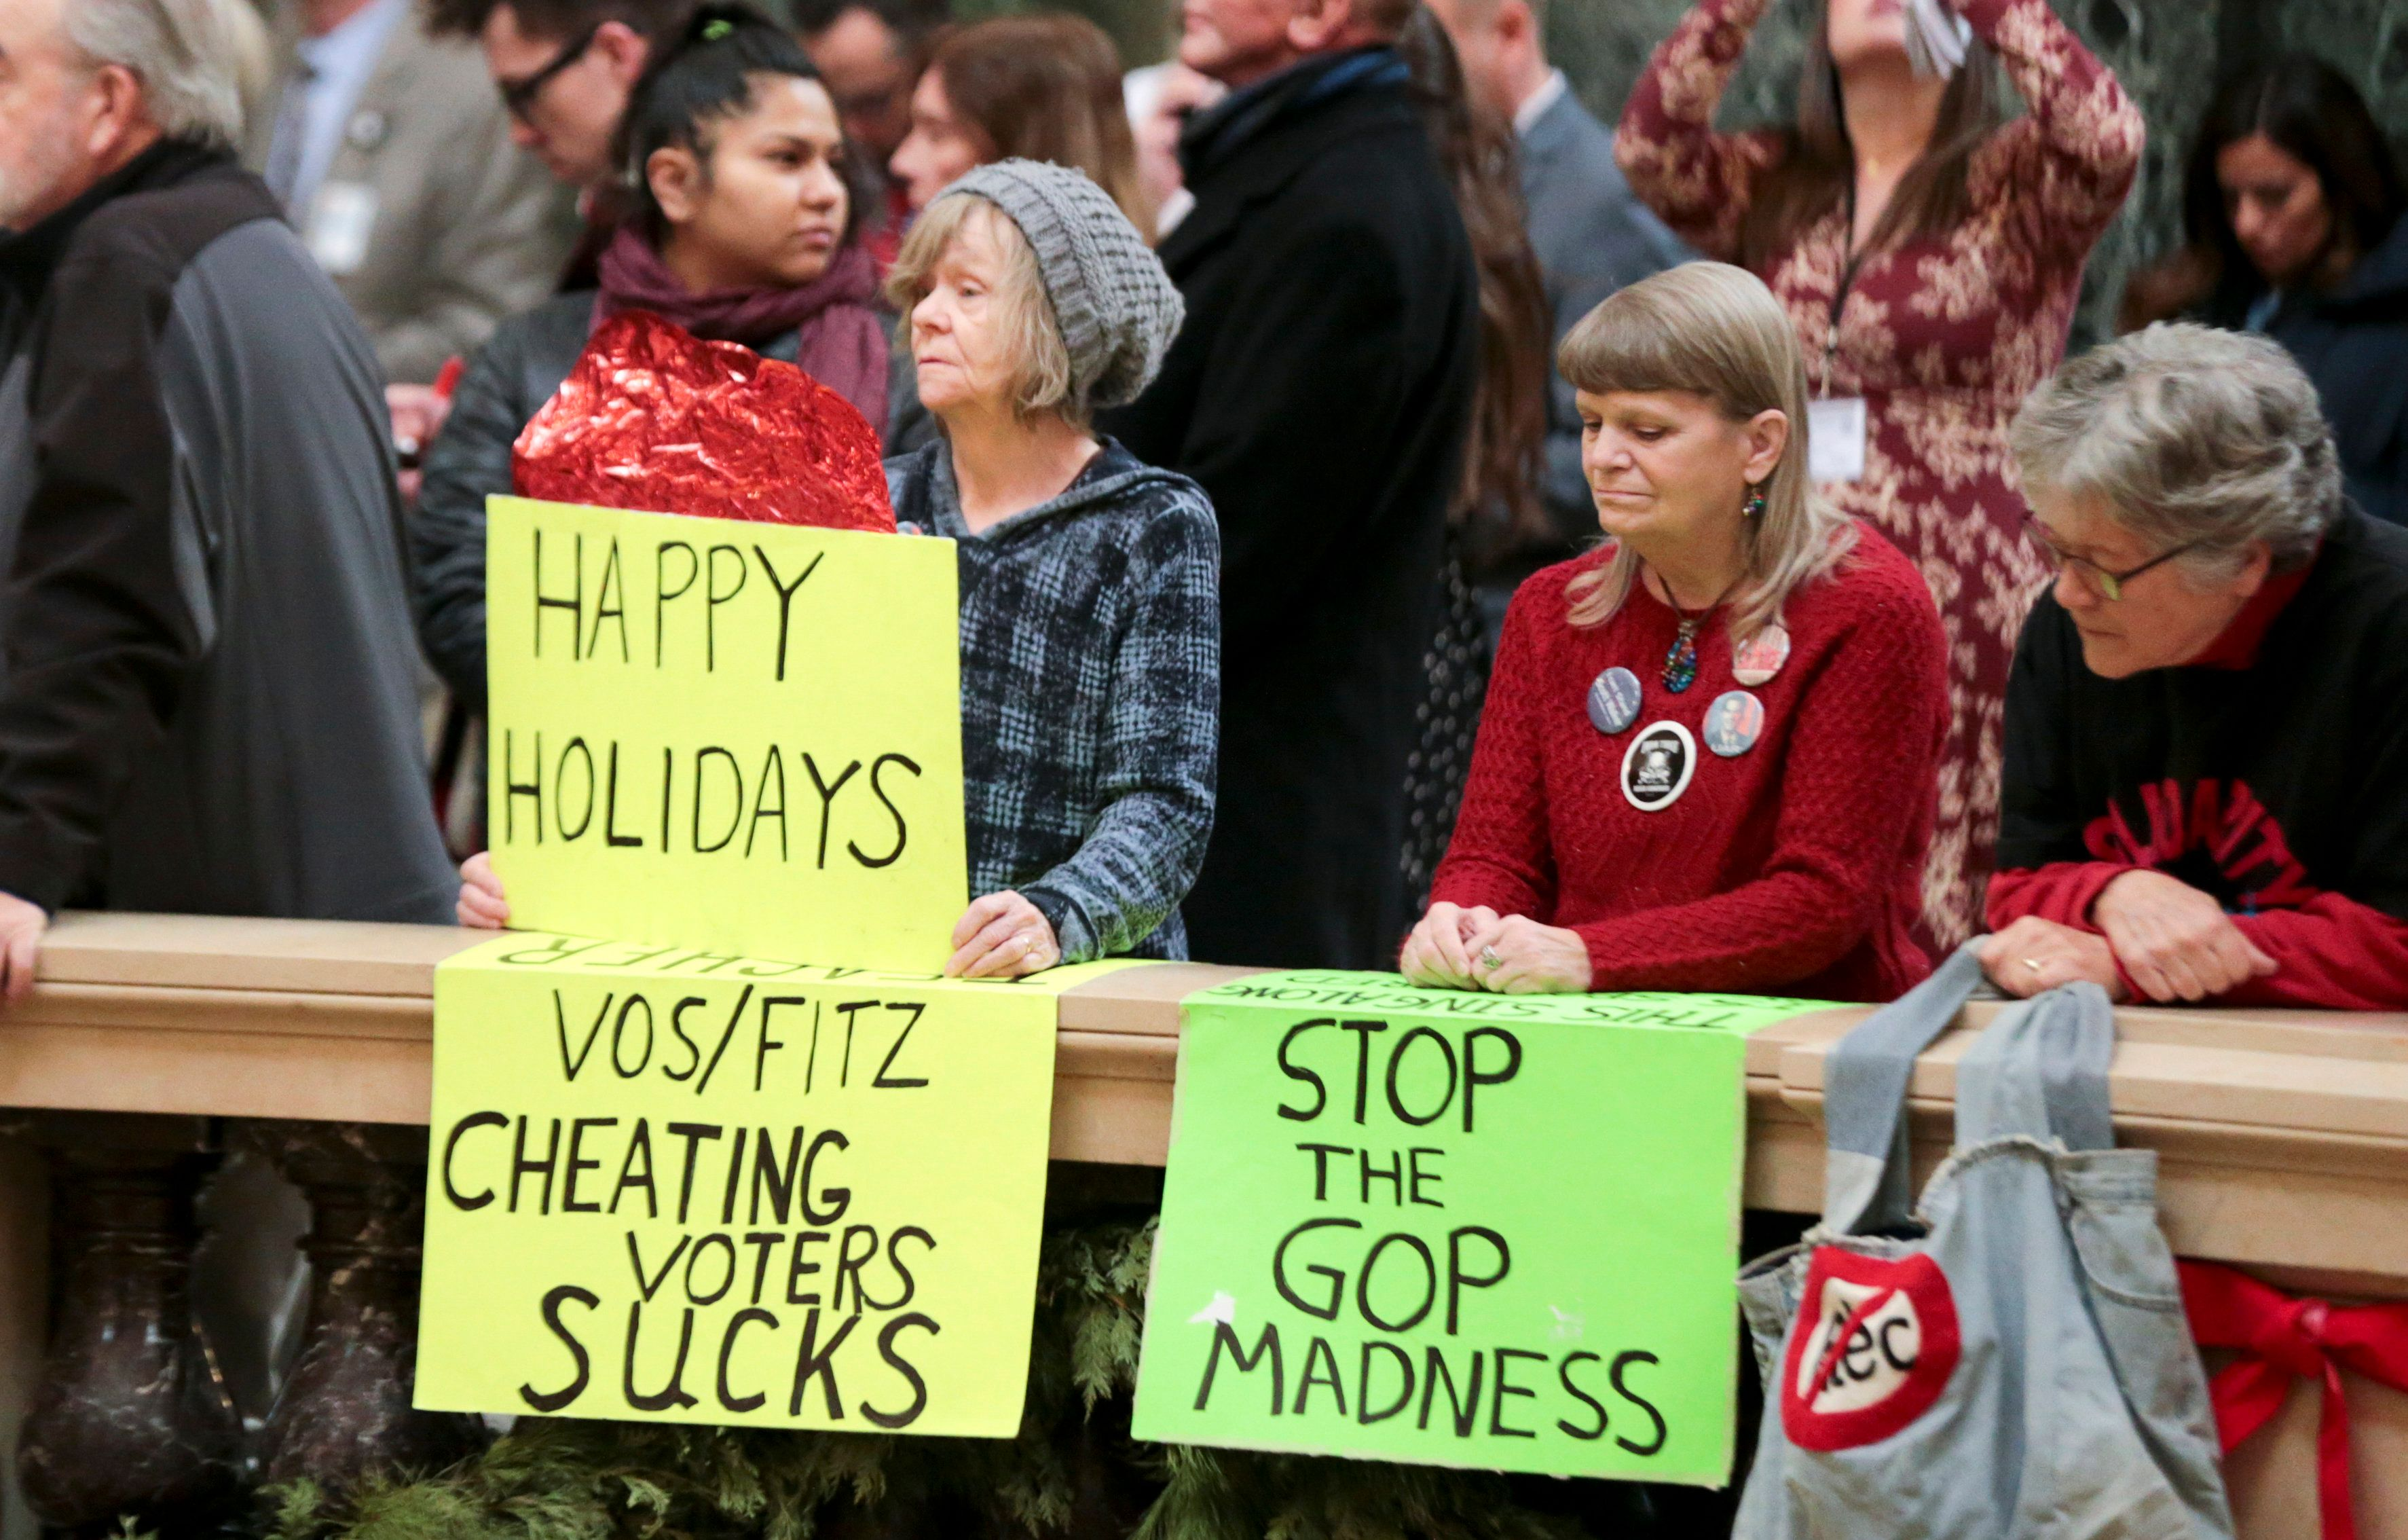 Protesters Peppi Elder, left, and Christine Taylor holds up signs during the state Christmas Tree lighting ceremony in state Capitol Rotunda Tuesday Dec. 4, 2018, in Madison, Wis. The Senate and Assembly are set to send dozens of changes in state law to Gov. Scott Walker's desk. (Steve Apps